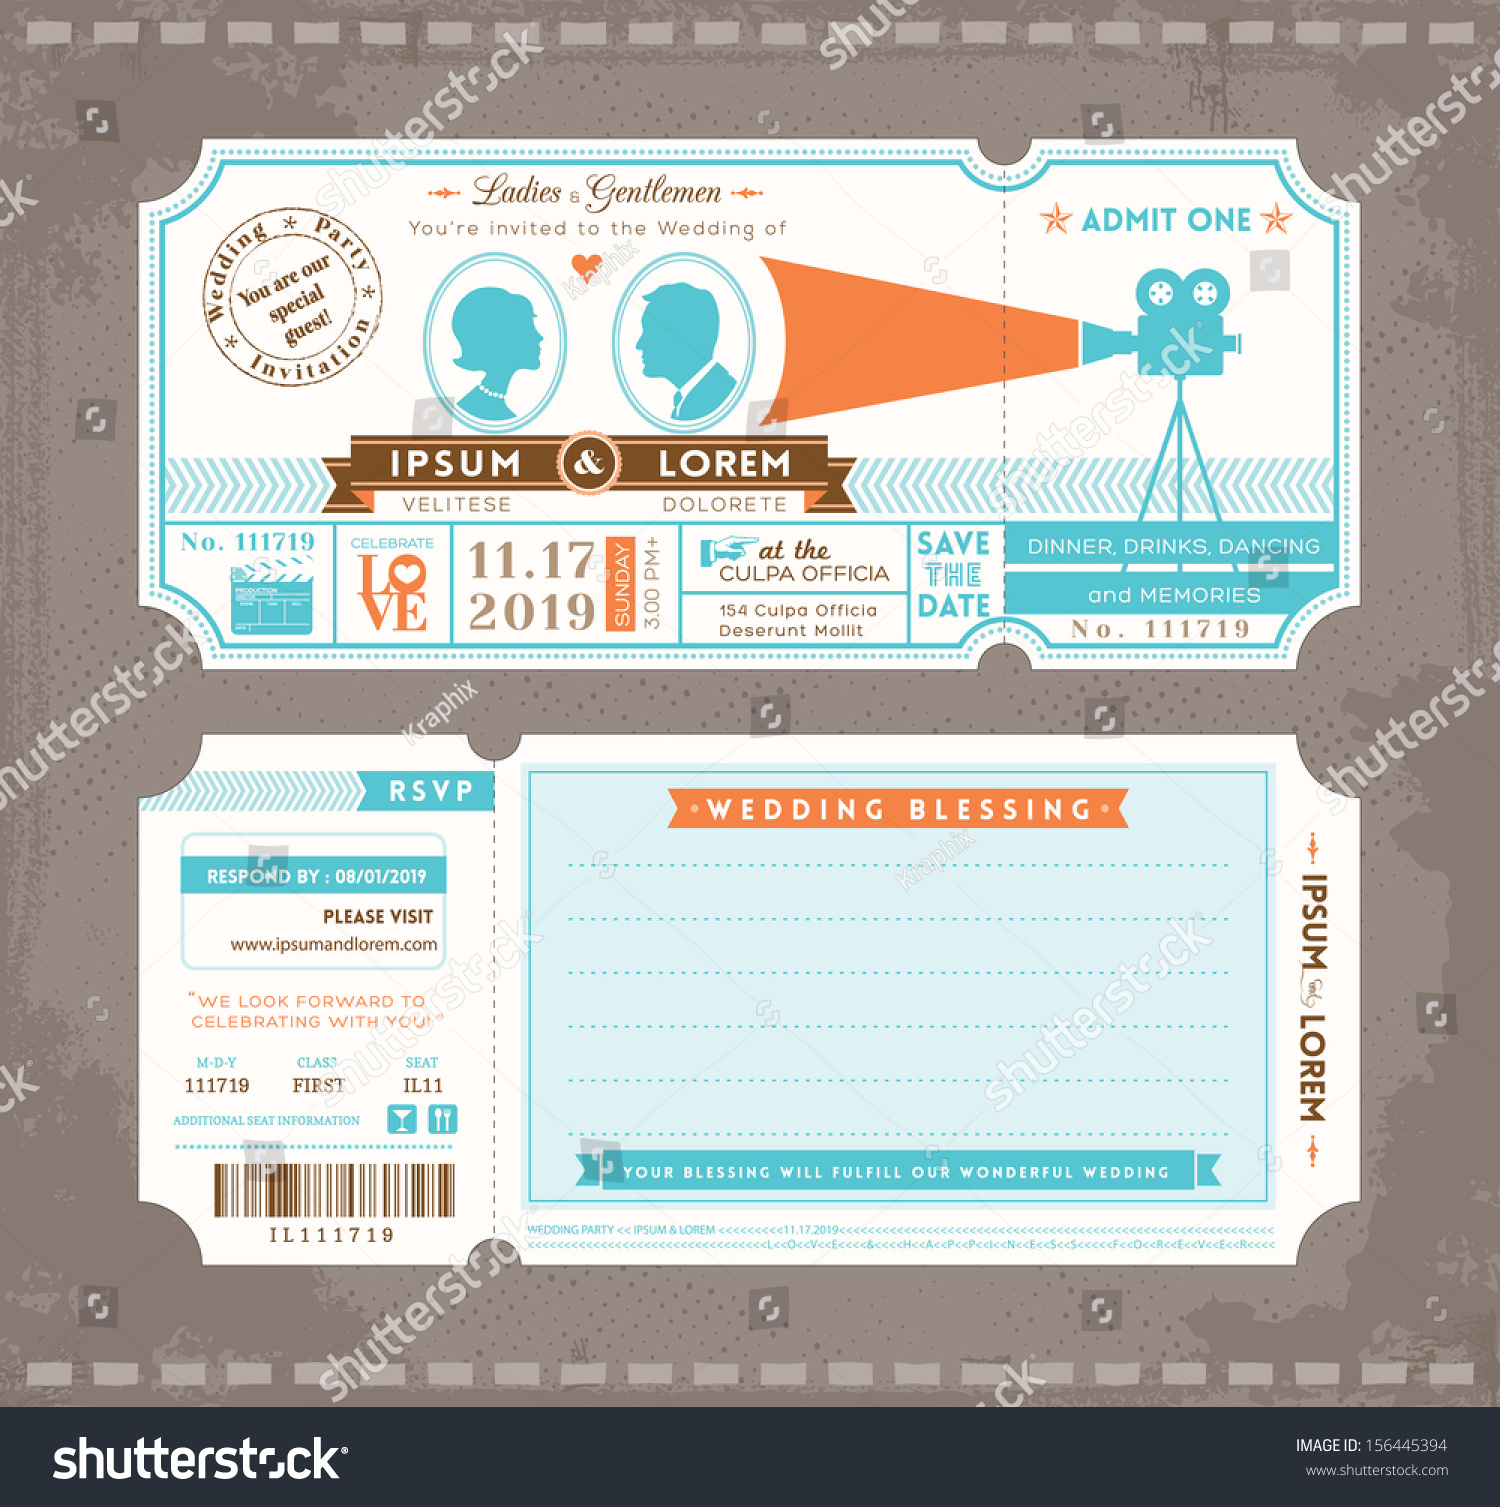 Vector Movie Ticket Wedding Invitation Design Vector – Movie Ticket Template